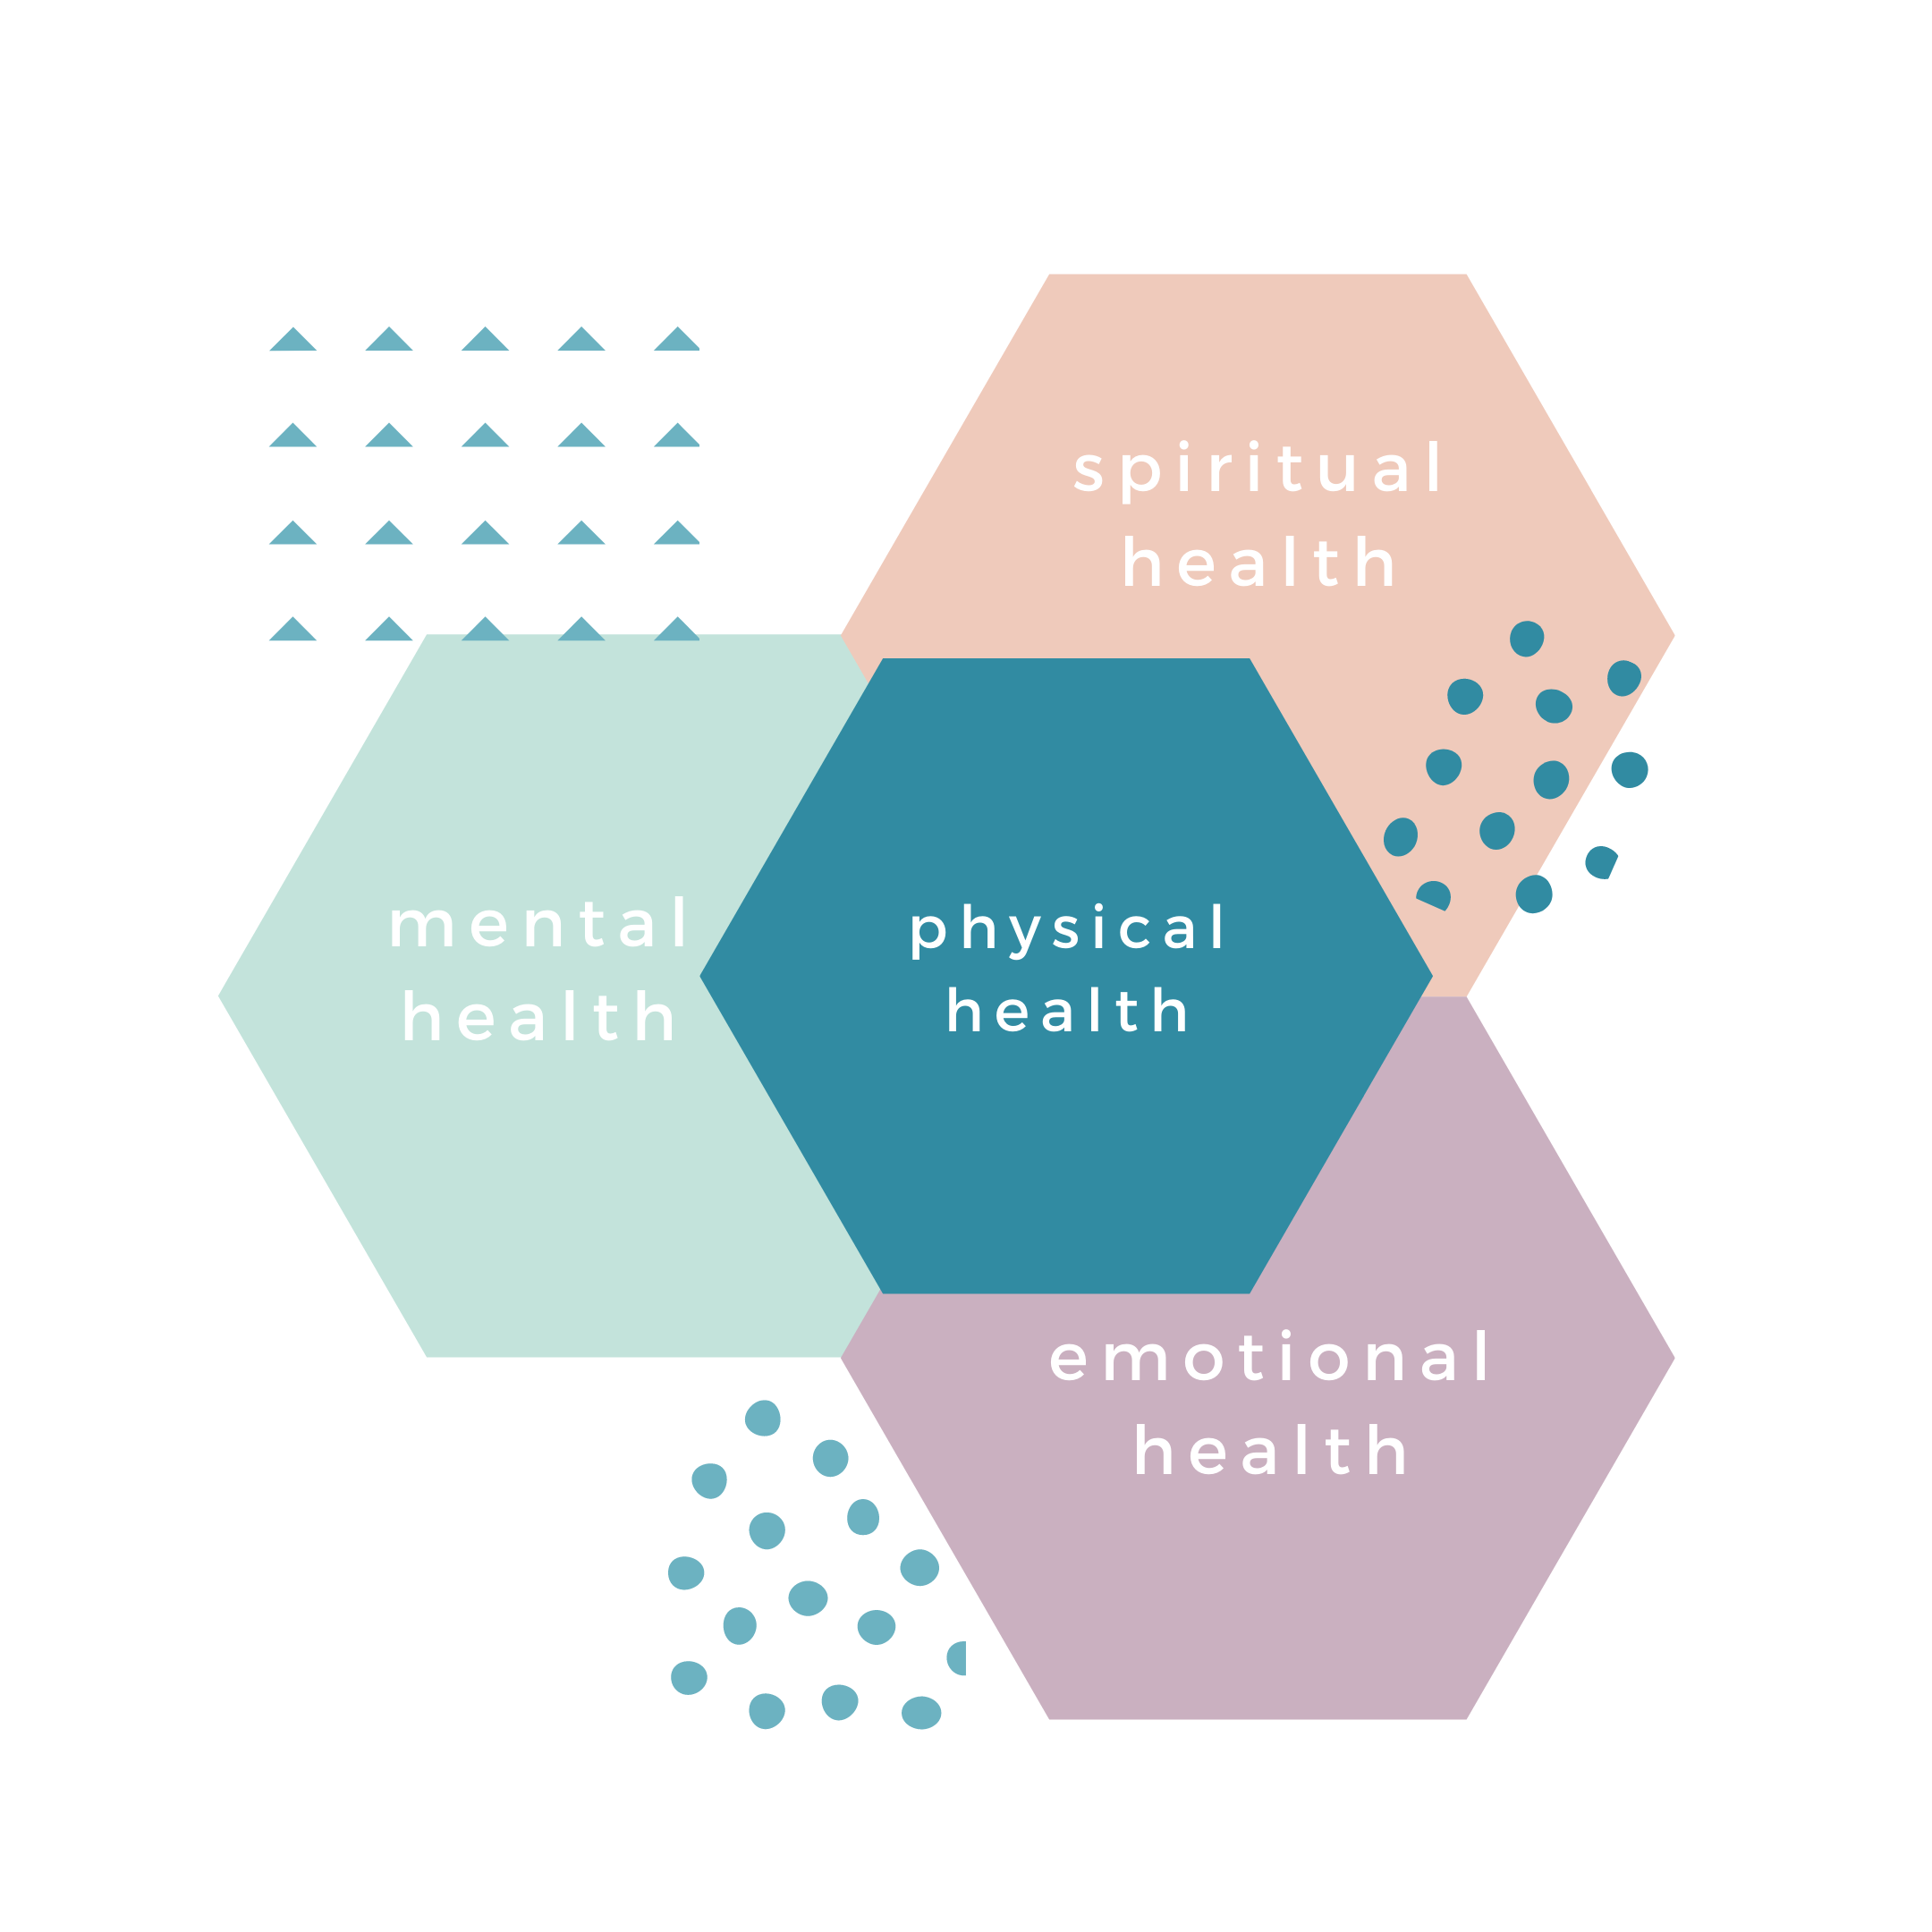 holistic health hexagon image